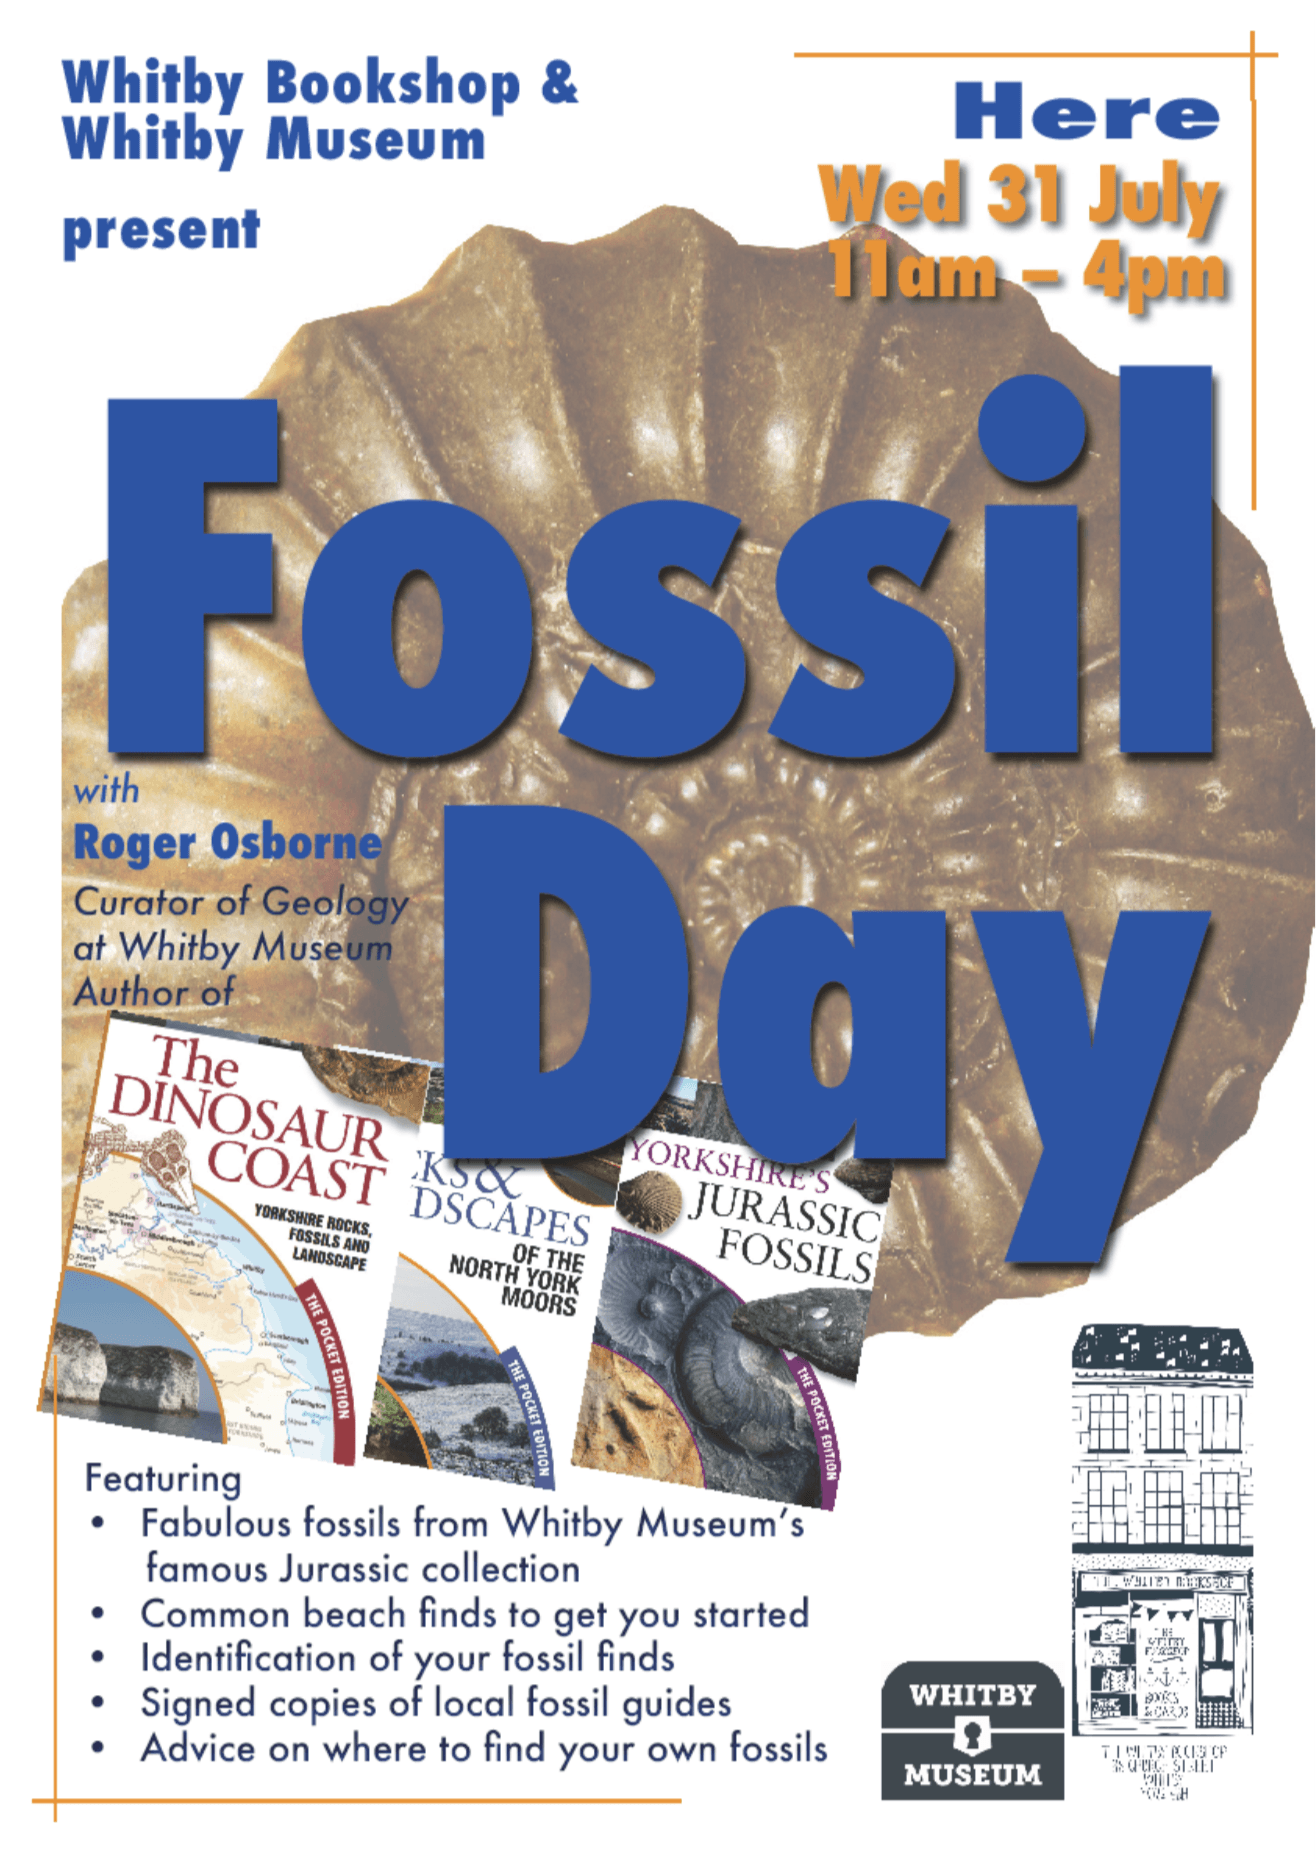 Fossil Day at Whitby Bookshop